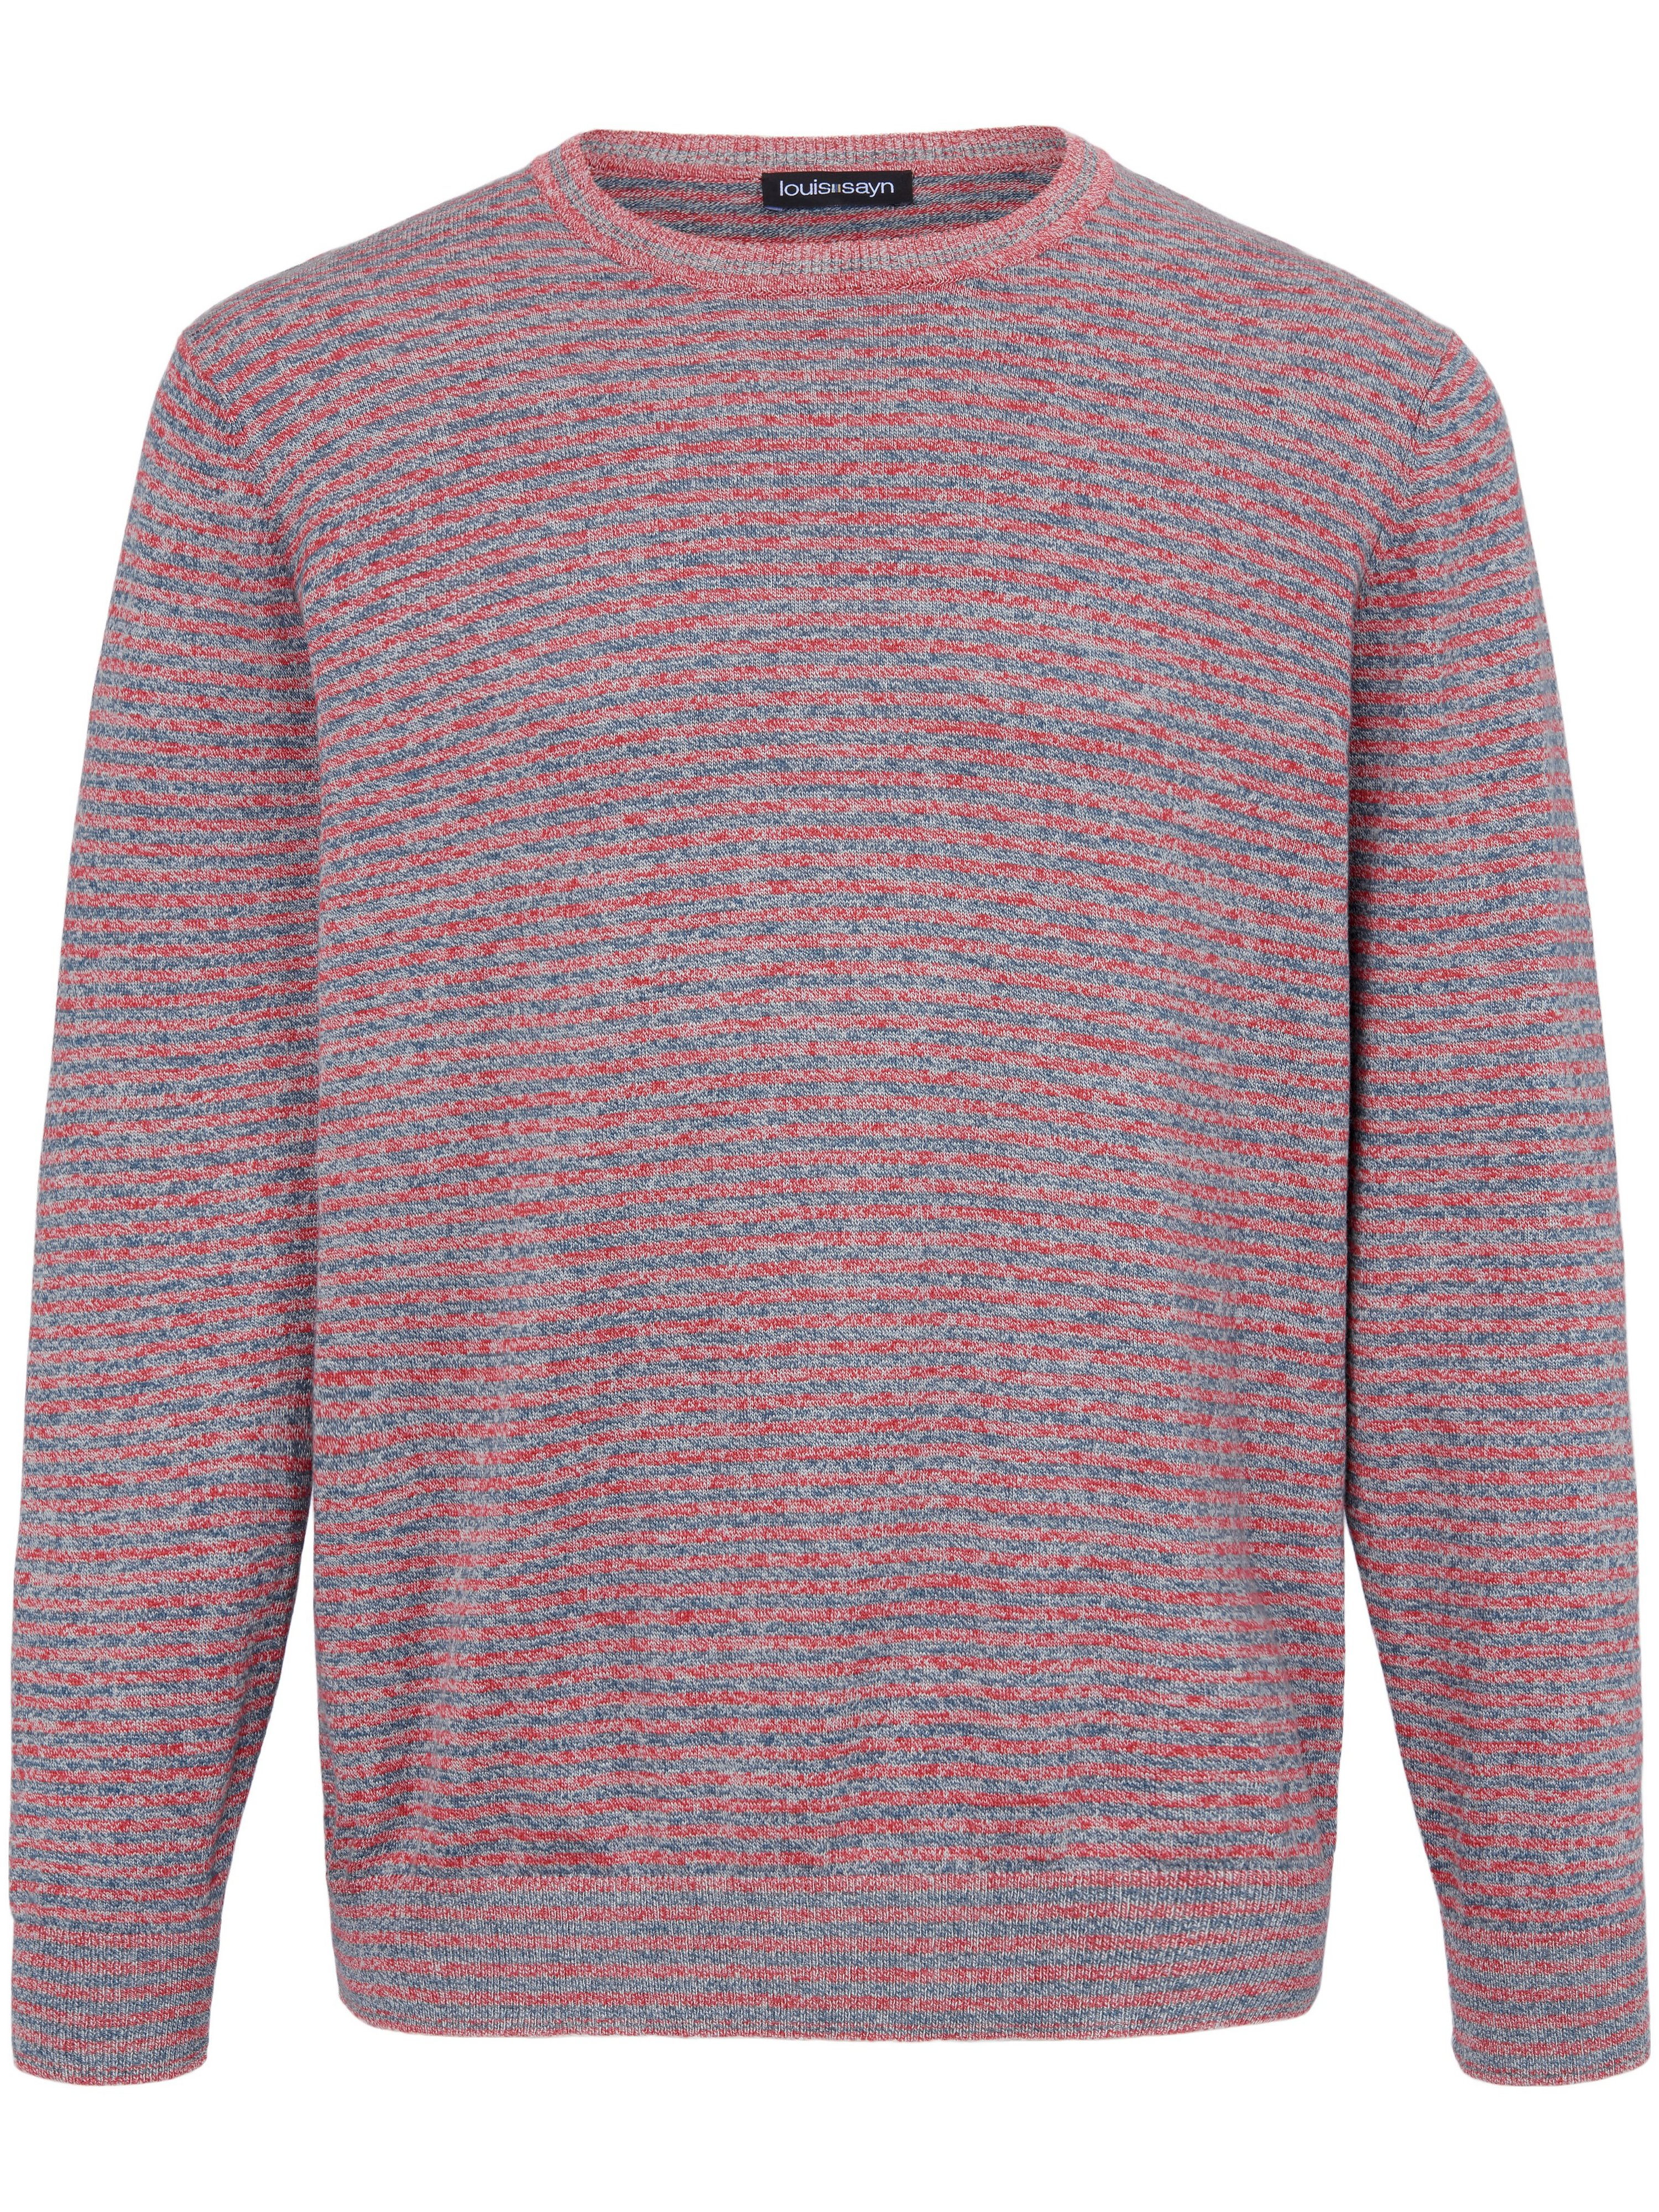 louis sayn - Rundhals-Pullover  rot